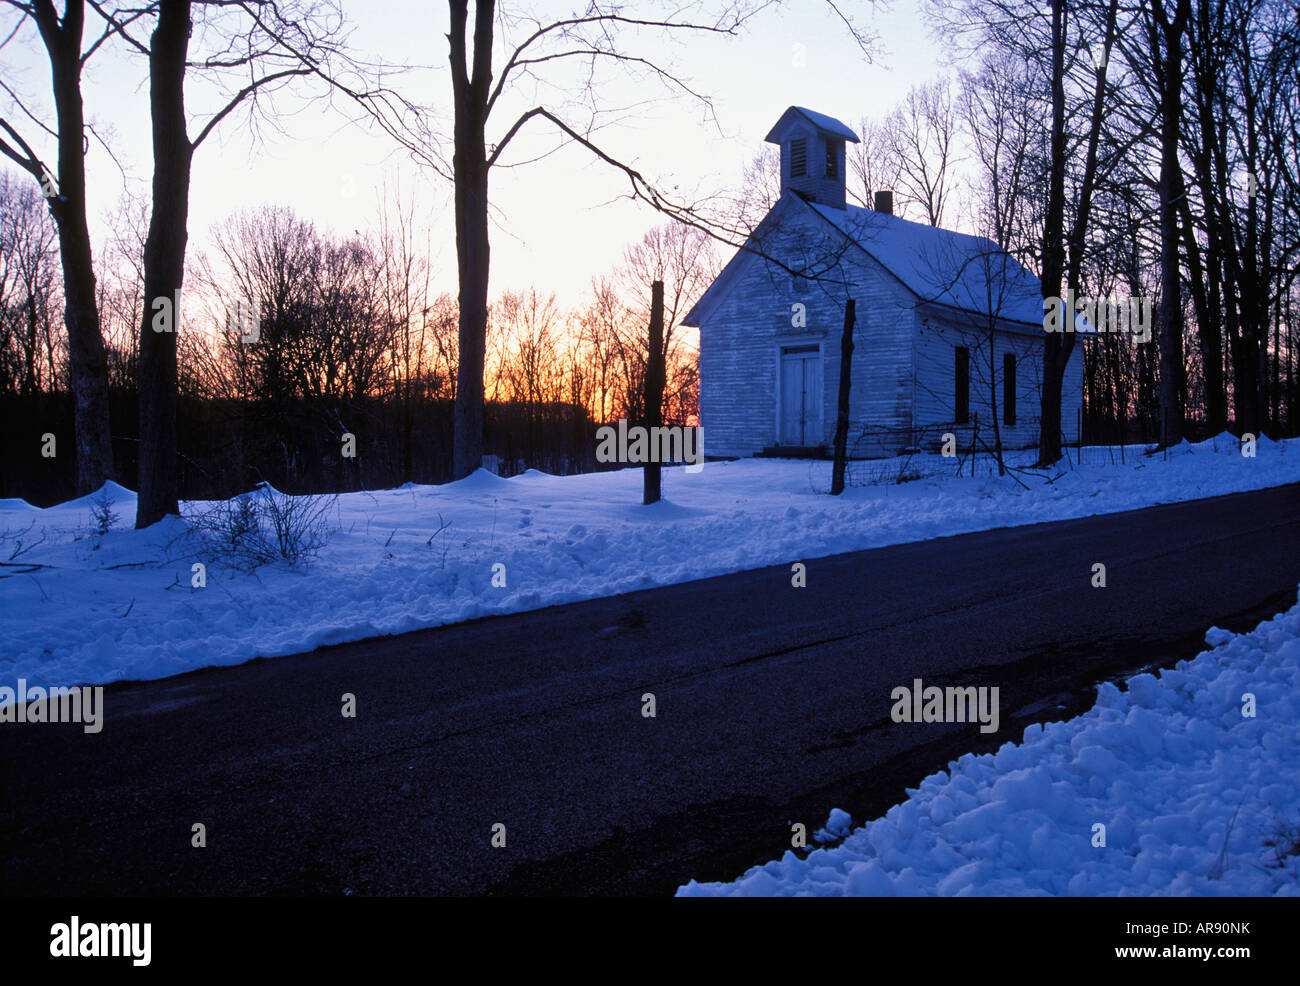 Old Country Church Blanketed In Snow At Sunset Washington County Indiana